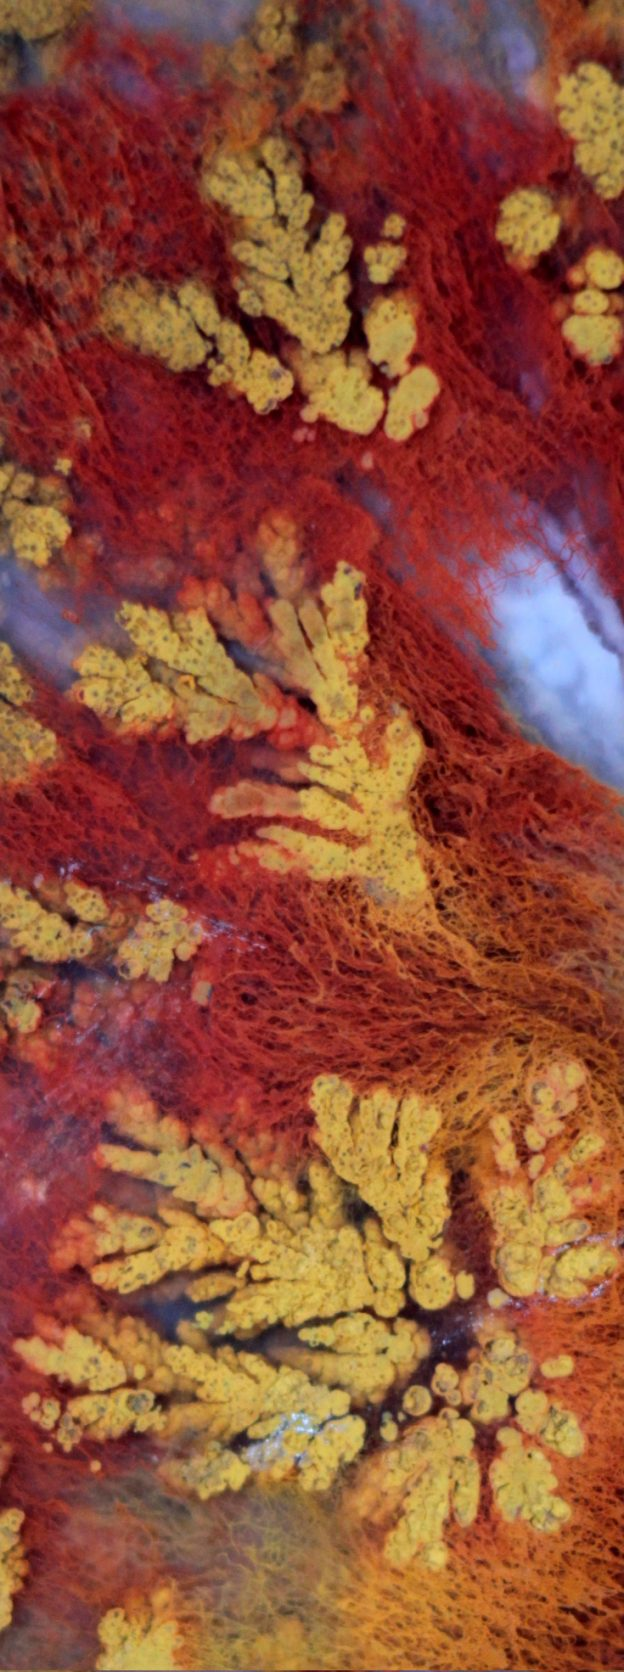 moss and plume agate macrophotograph